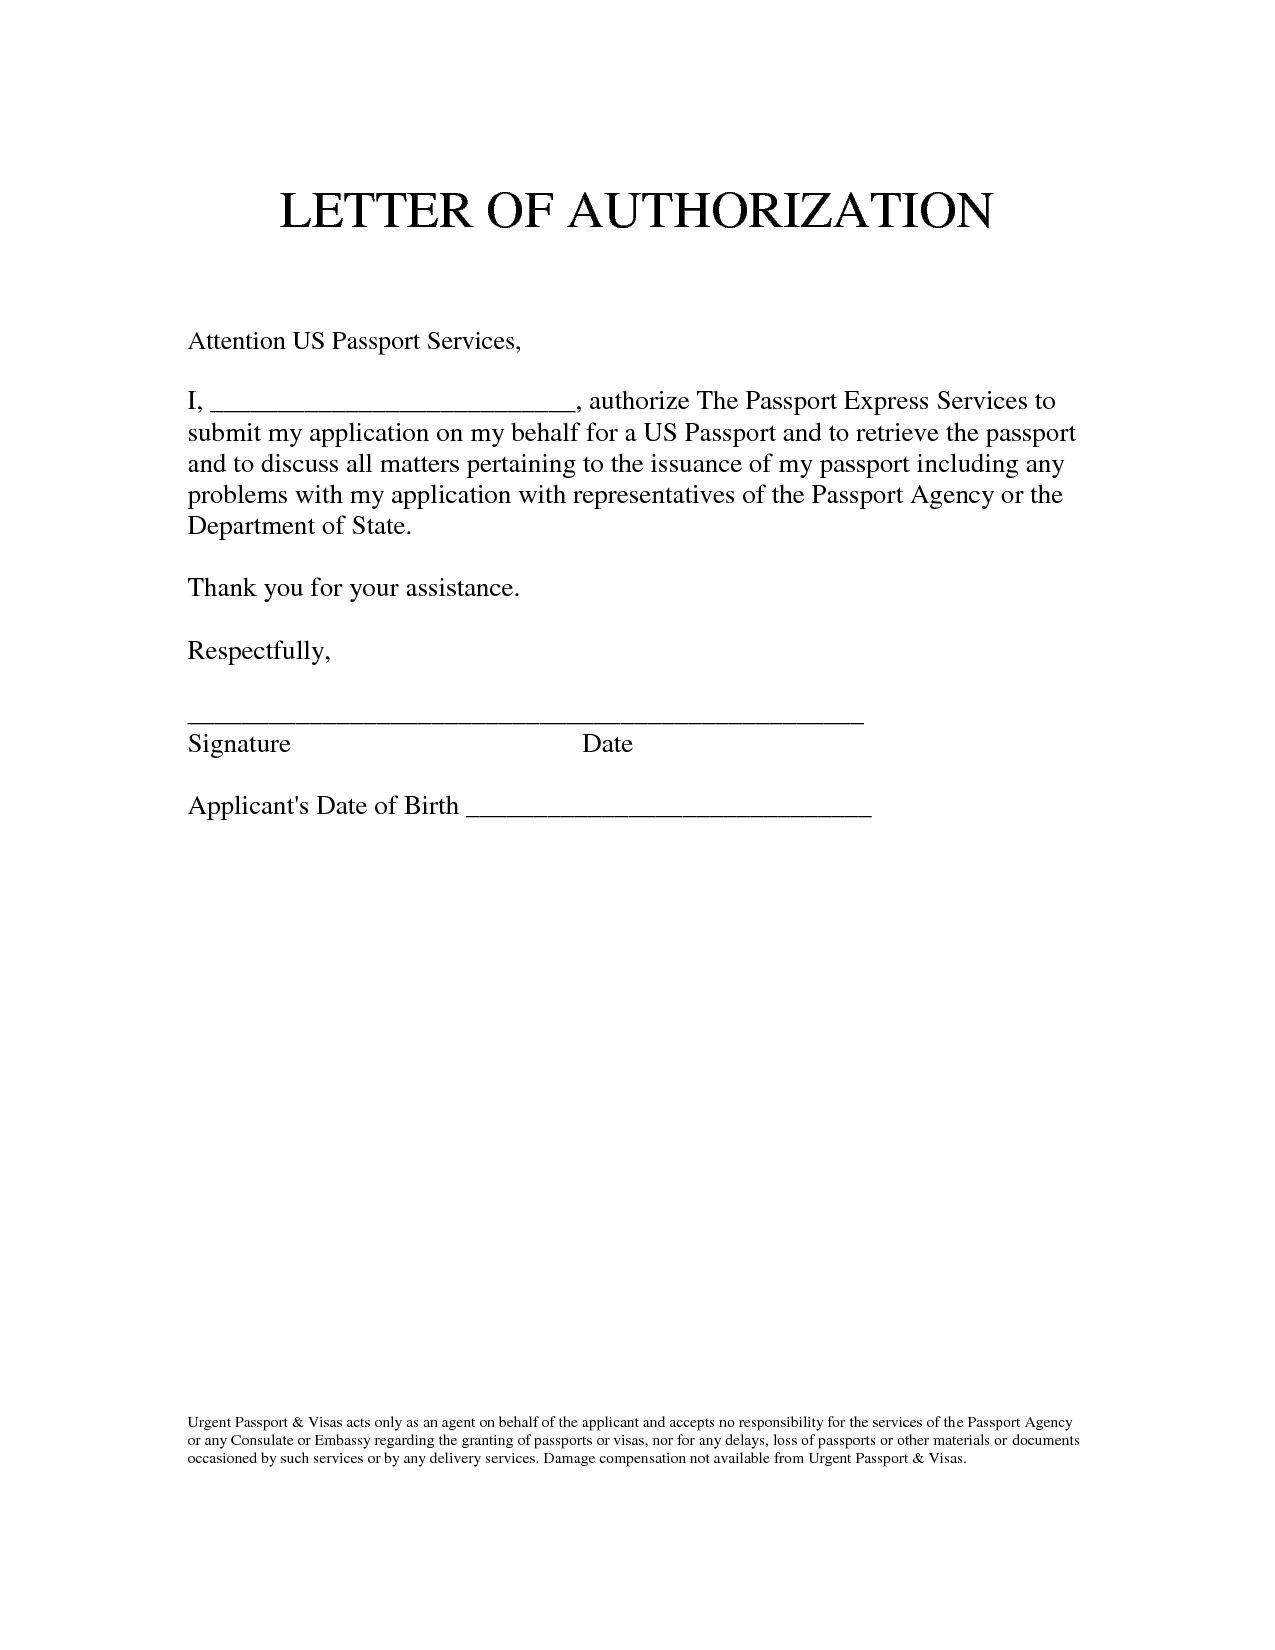 credit card authorization letter template example-bank account authorization letter sample format for cheque book 3-f